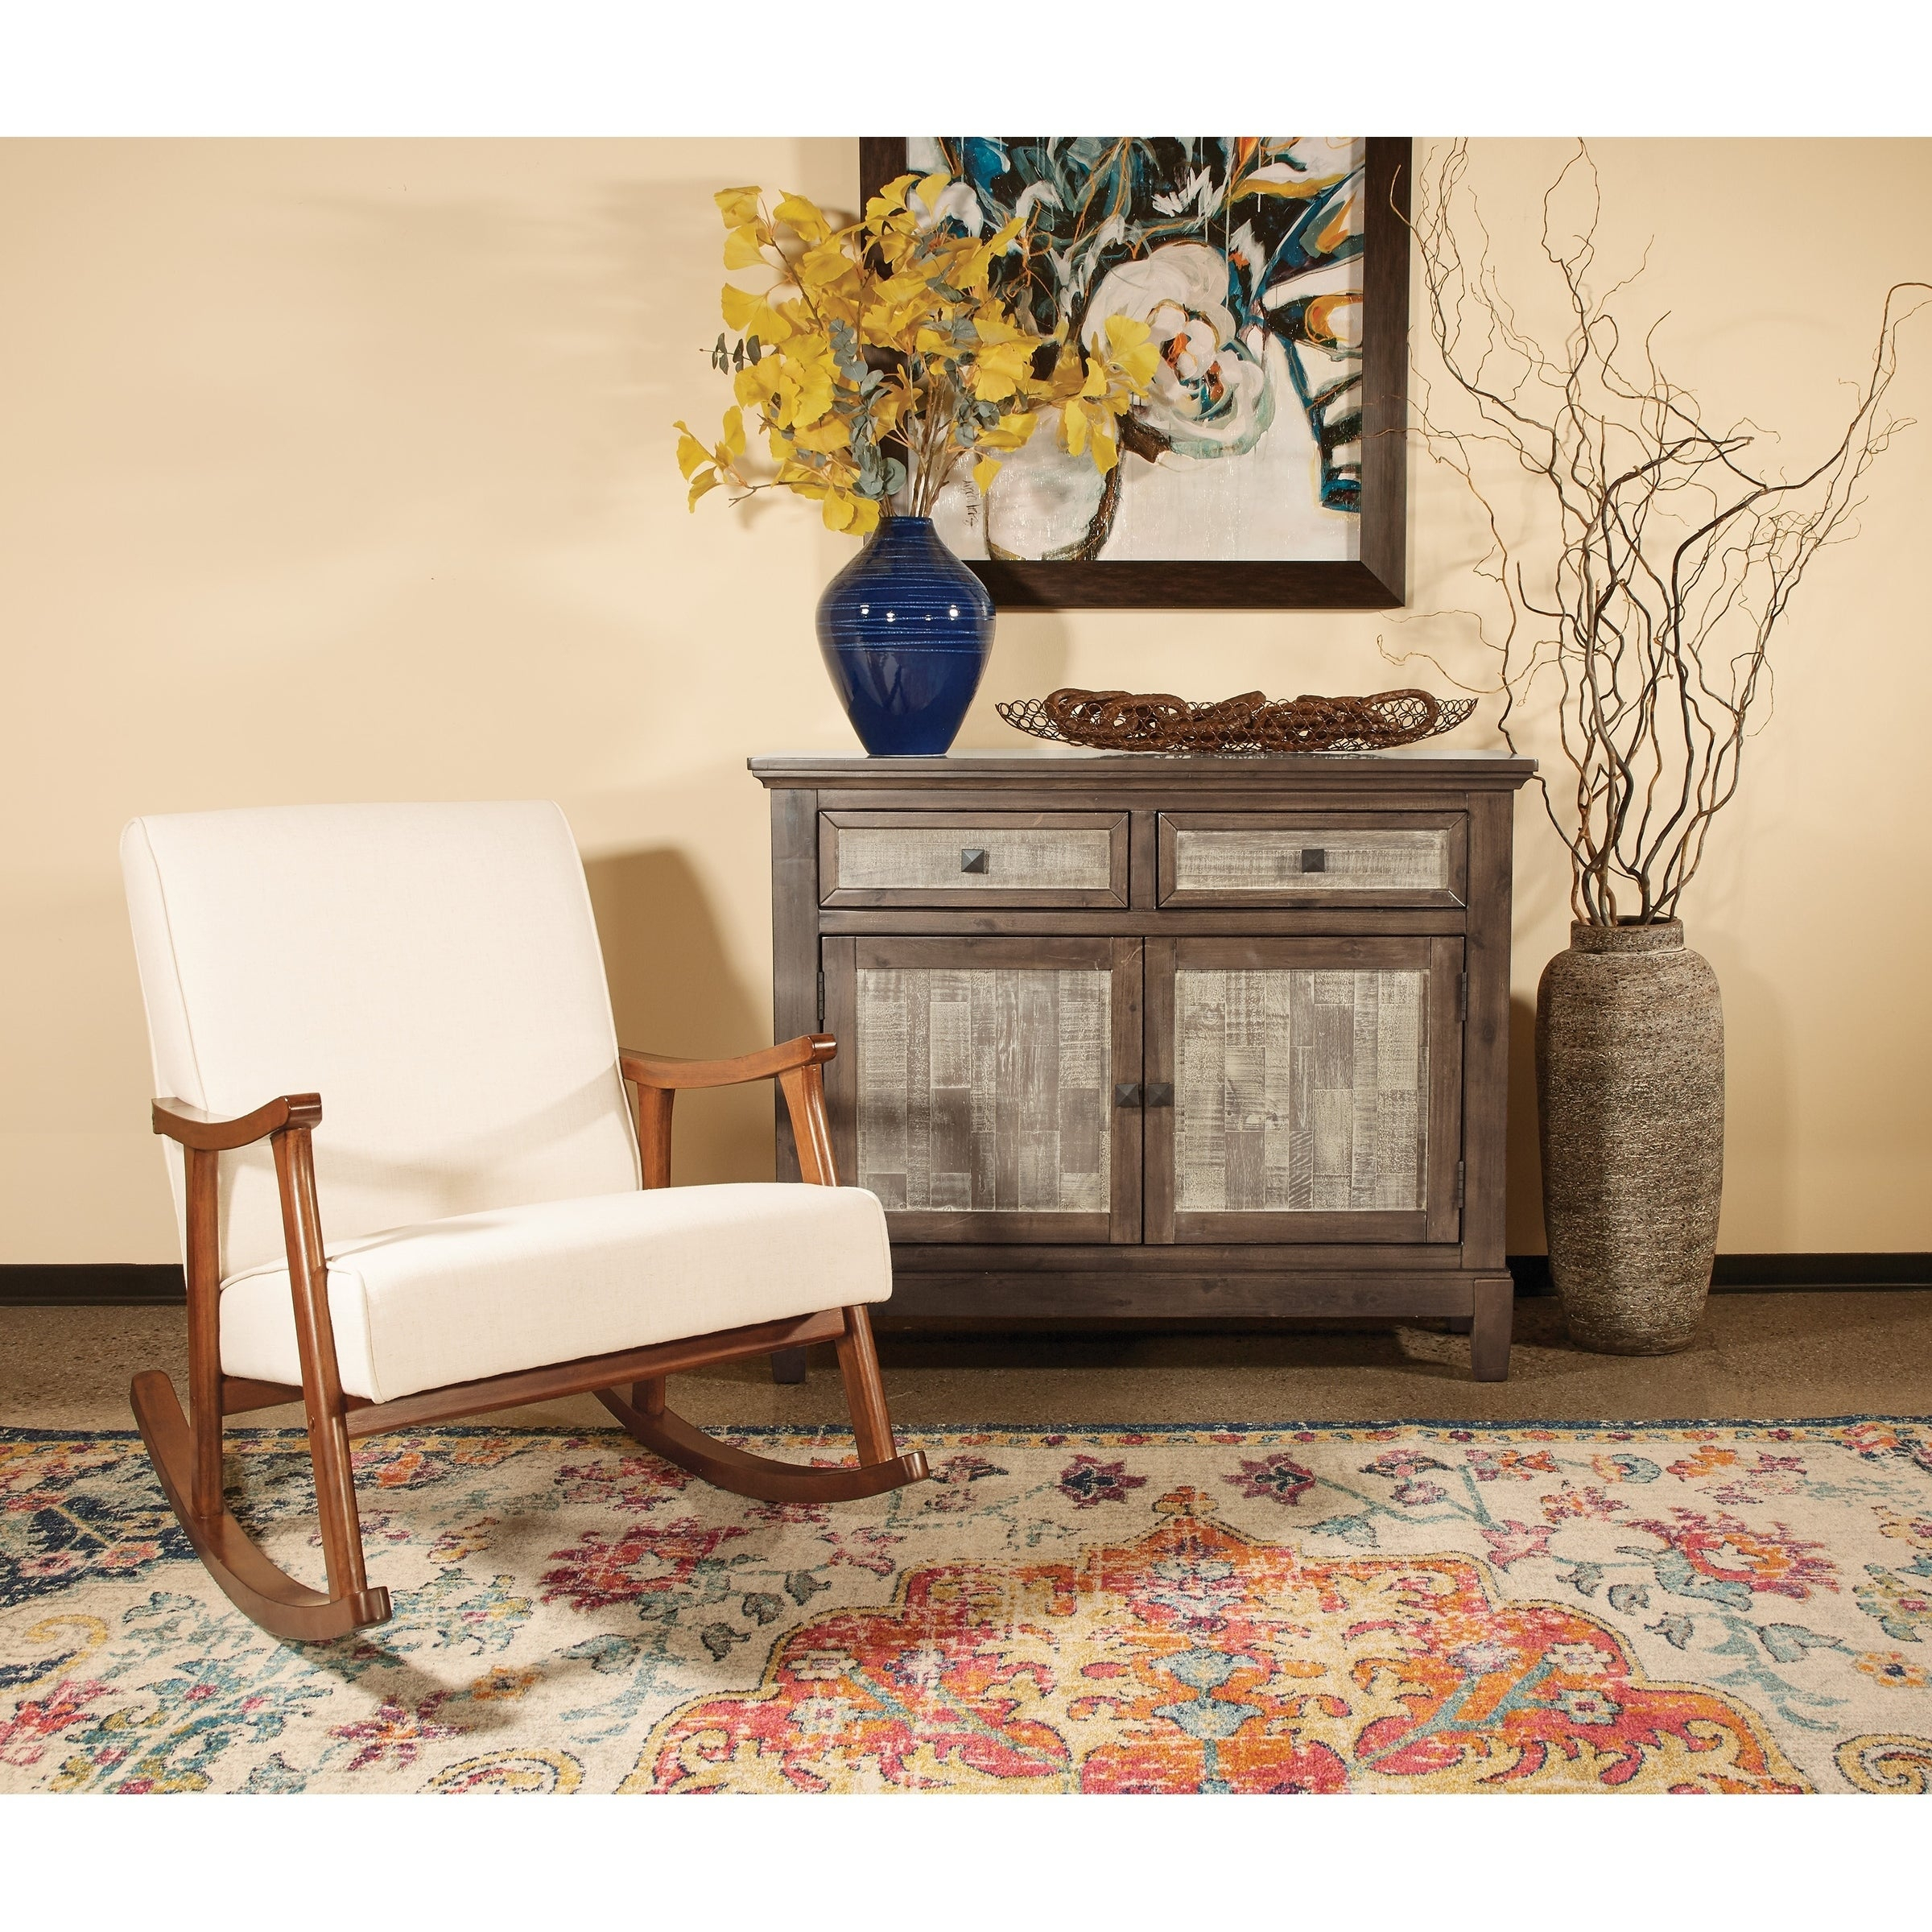 Osp Home Furnishings Gainsborough Rocker In Linen Fabric With Medium  Espresso Base Throughout Rocking Chairs In Linen Fabric With Medium Espresso Base (#13 of 20)